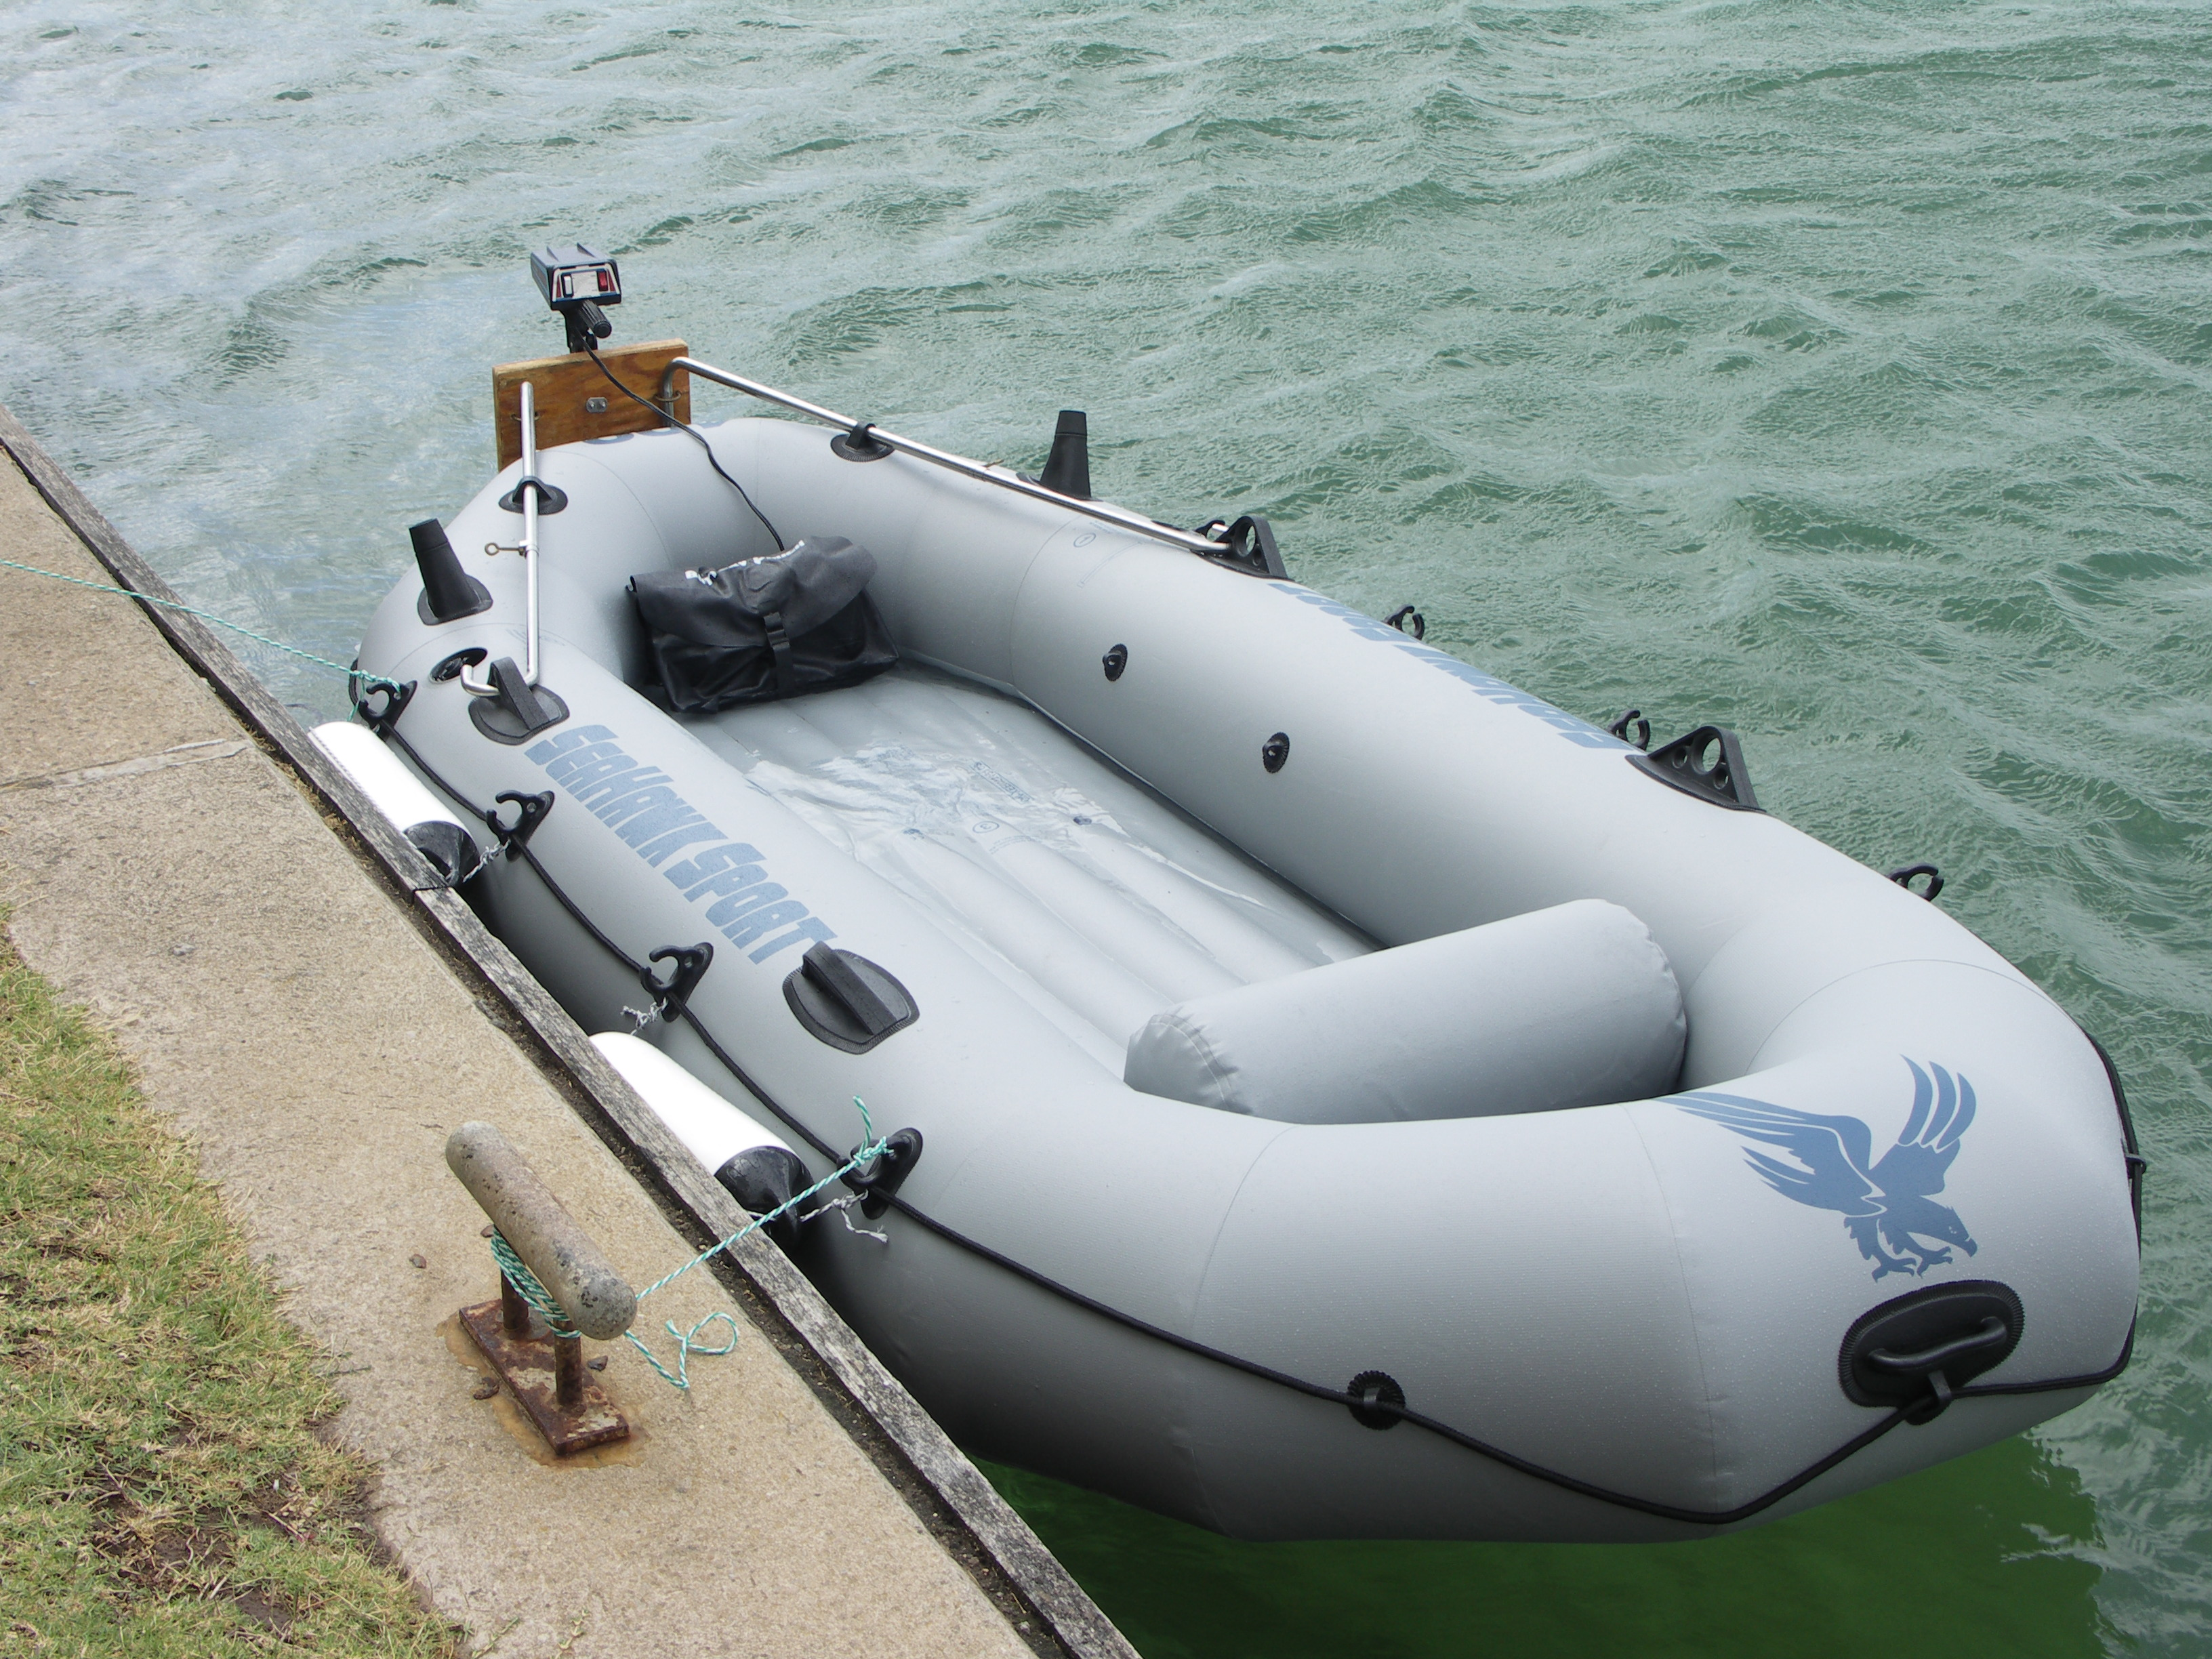 ... inflatable boats for fishing - Small Inflatable Boats For Fishing 3